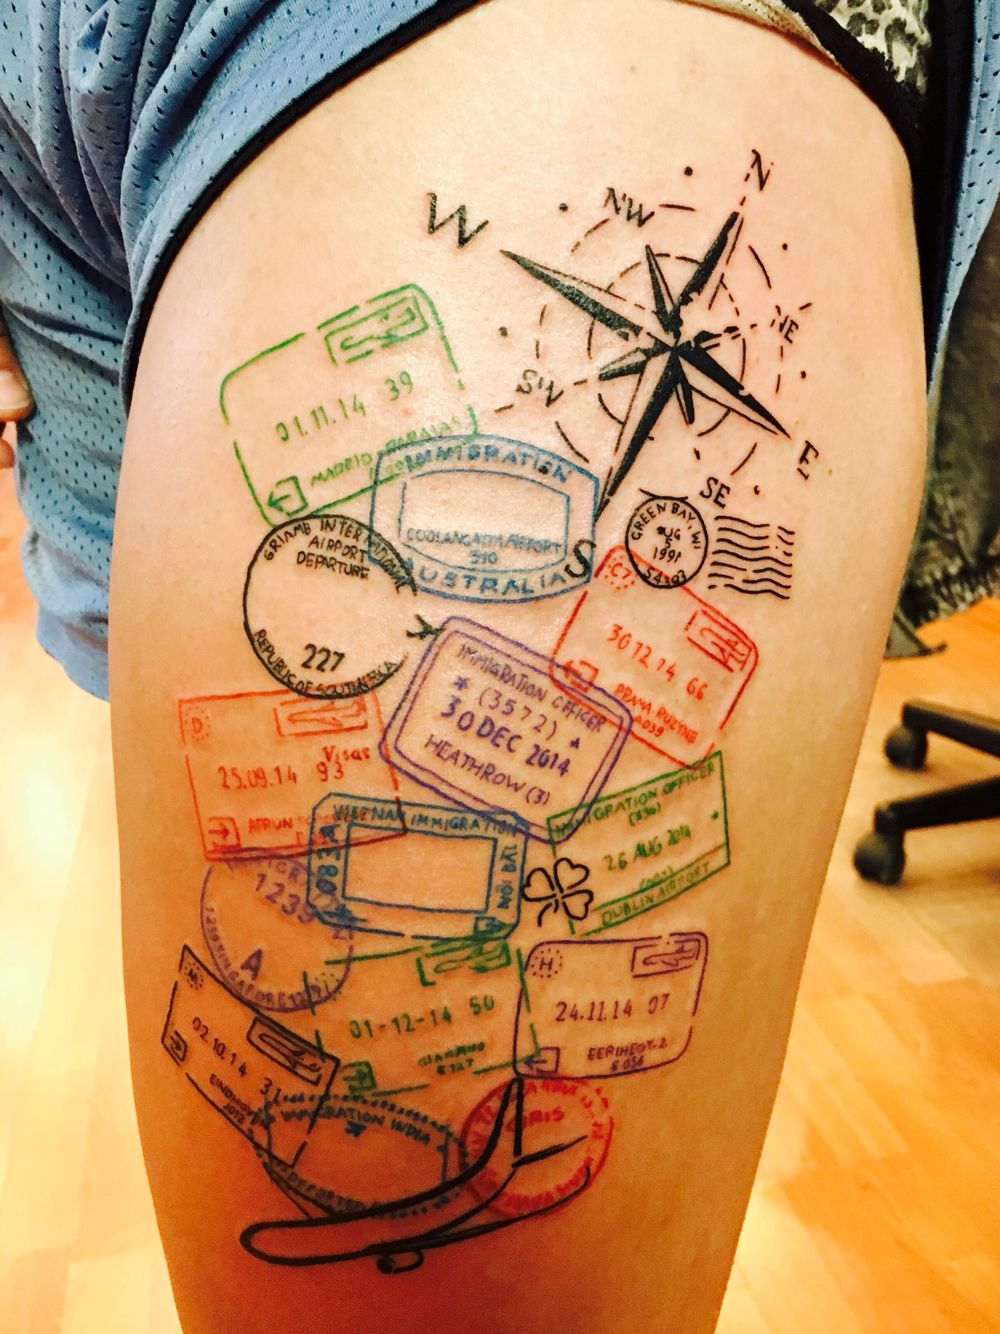 Tattoo Shops In Wisconsin Of Travel Inspired Tattoo Done On My Upper Thigh By Marc